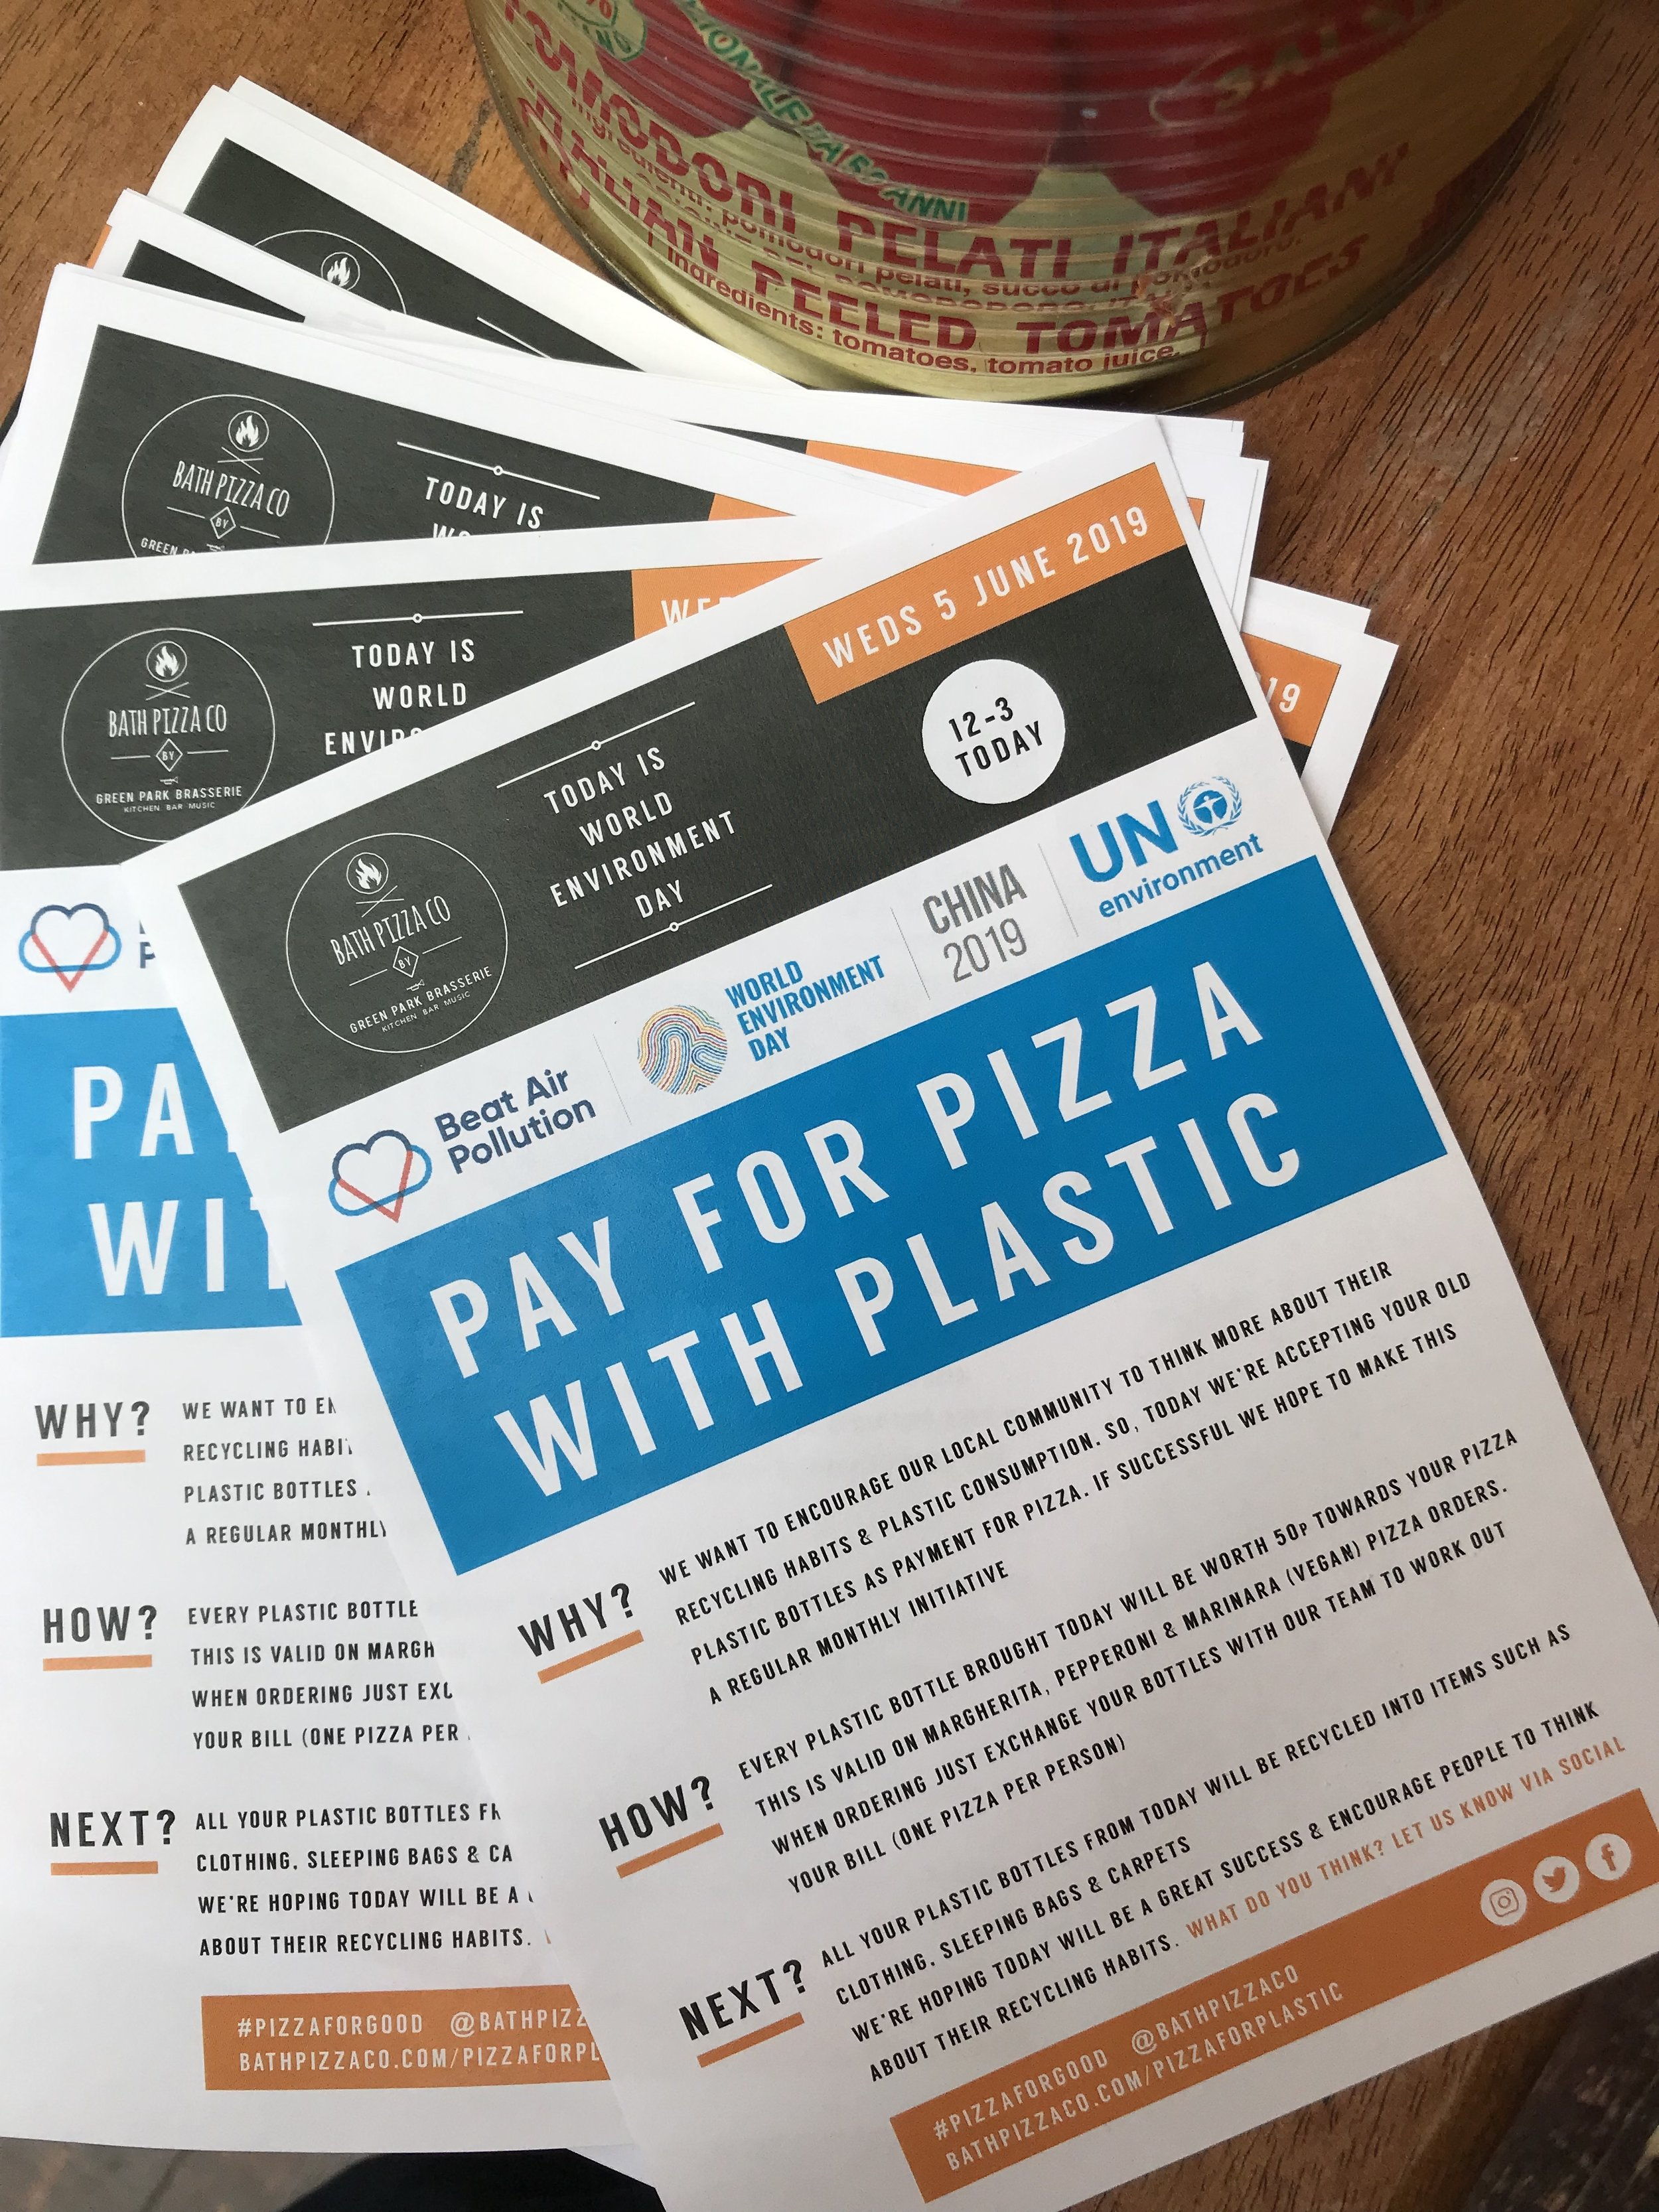 pay-for-pizza-with-plastic.jpg